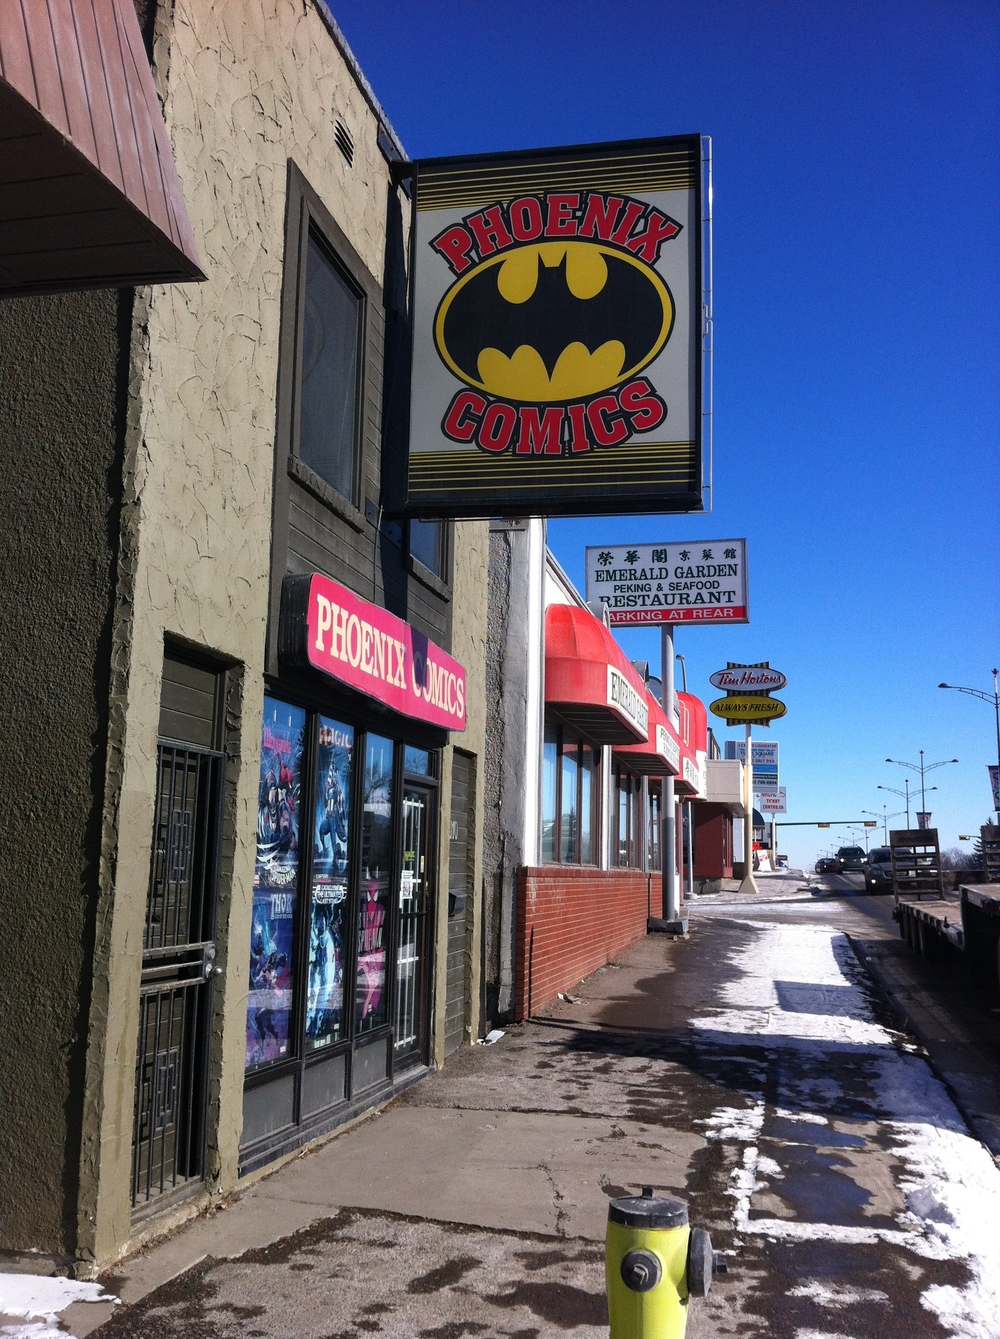 Don't judge a story by its street presence. Inside this unassuming store is the motherlode of comics and magic cards.